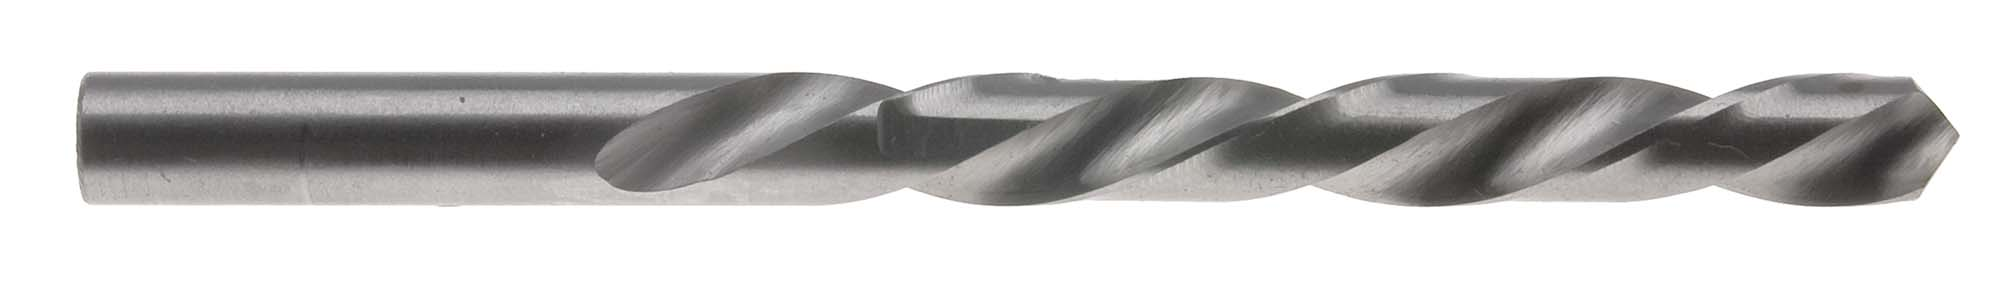 "#43 (.0890"") Left Hand Jobber Drill Bit, High Speed Steel"